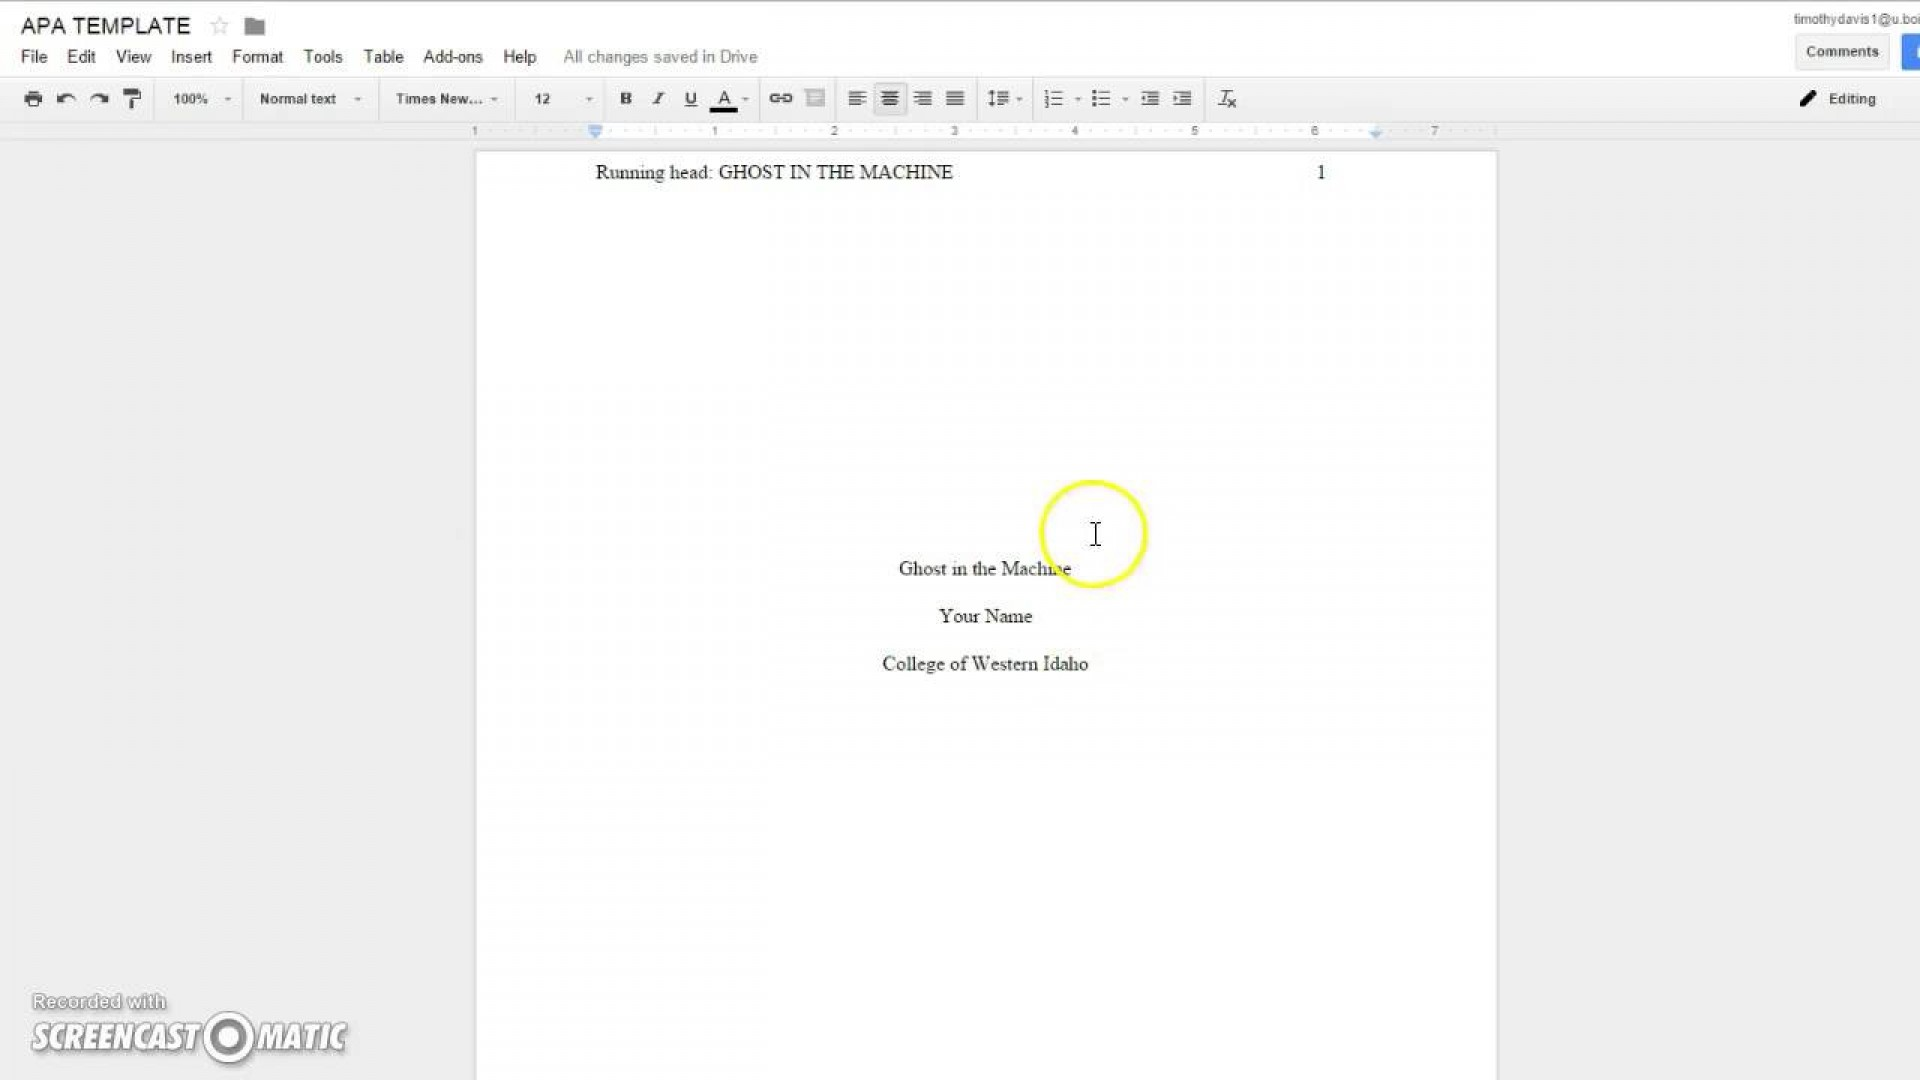 001 Apa Research Paper Template Google Docs Magnificent 1920